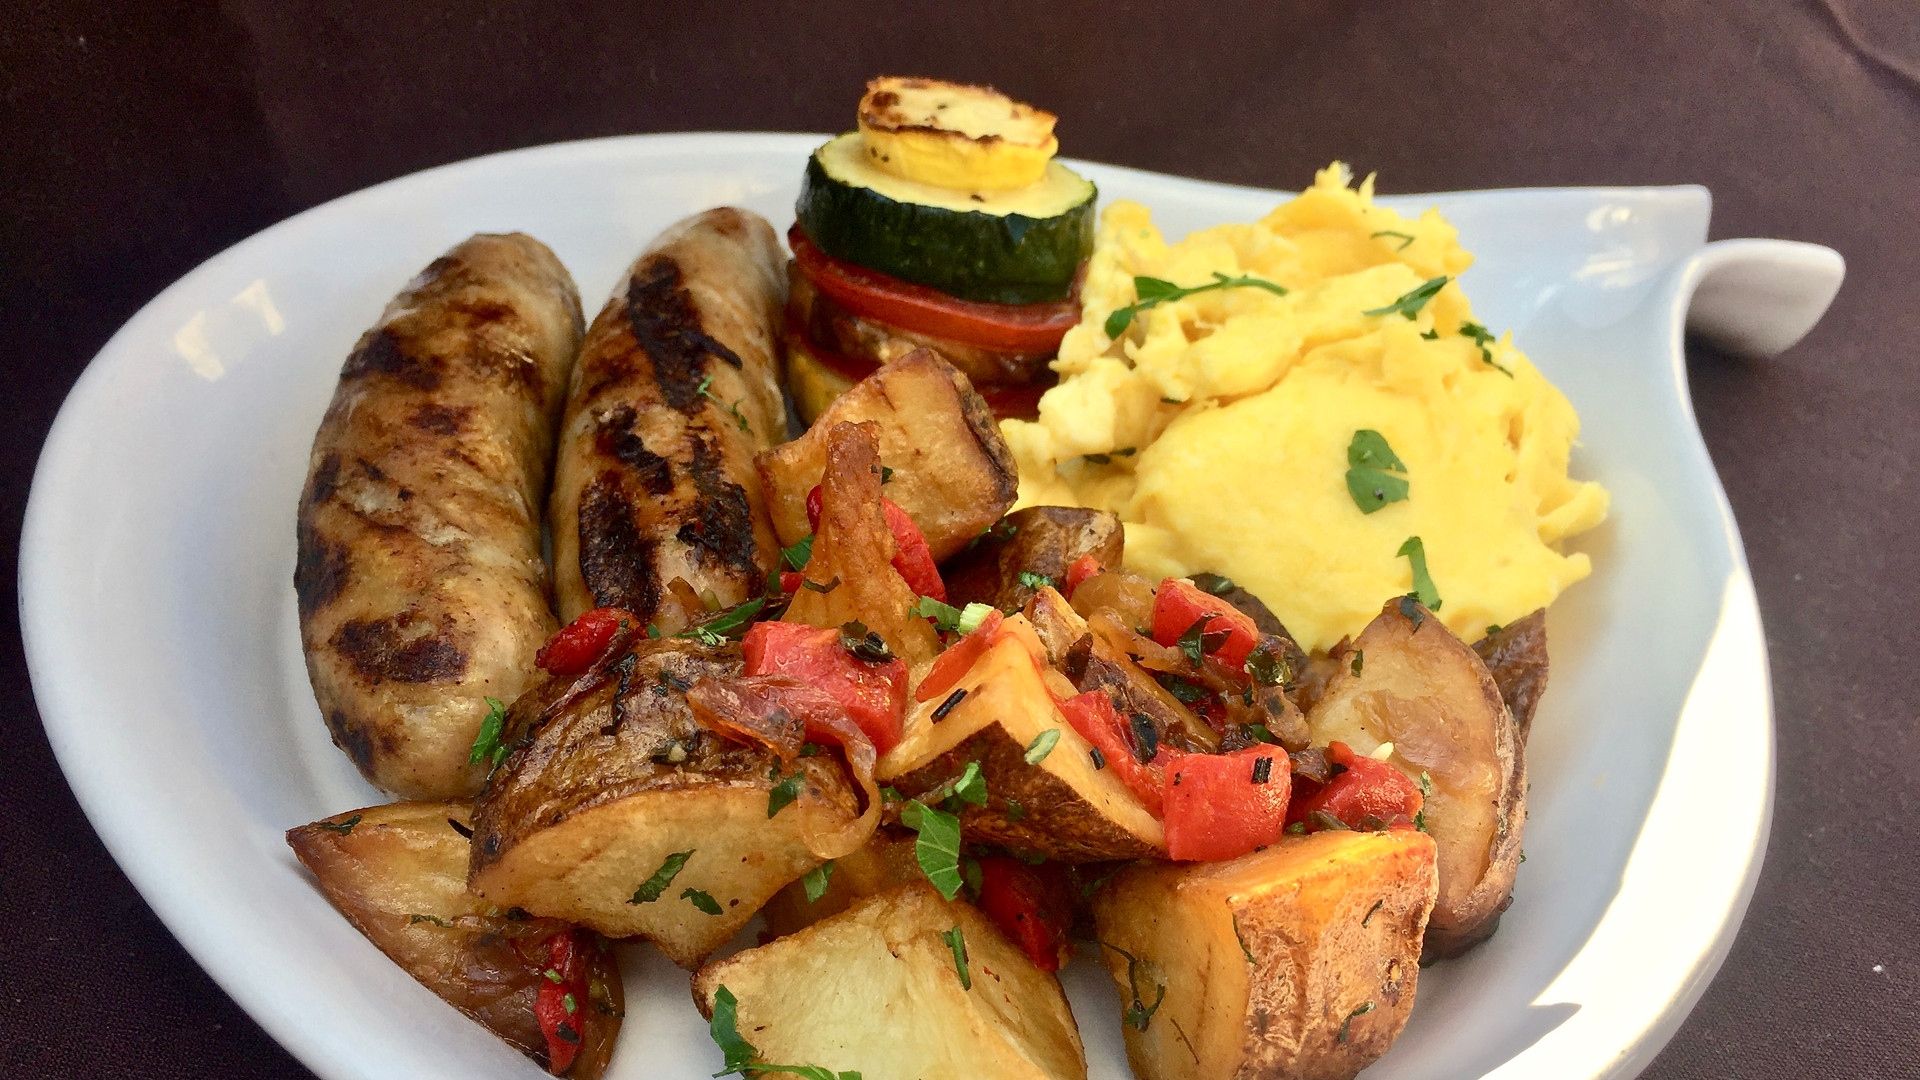 GRILLED VEAL SAUSAGE & SCRAMBLED EGGS